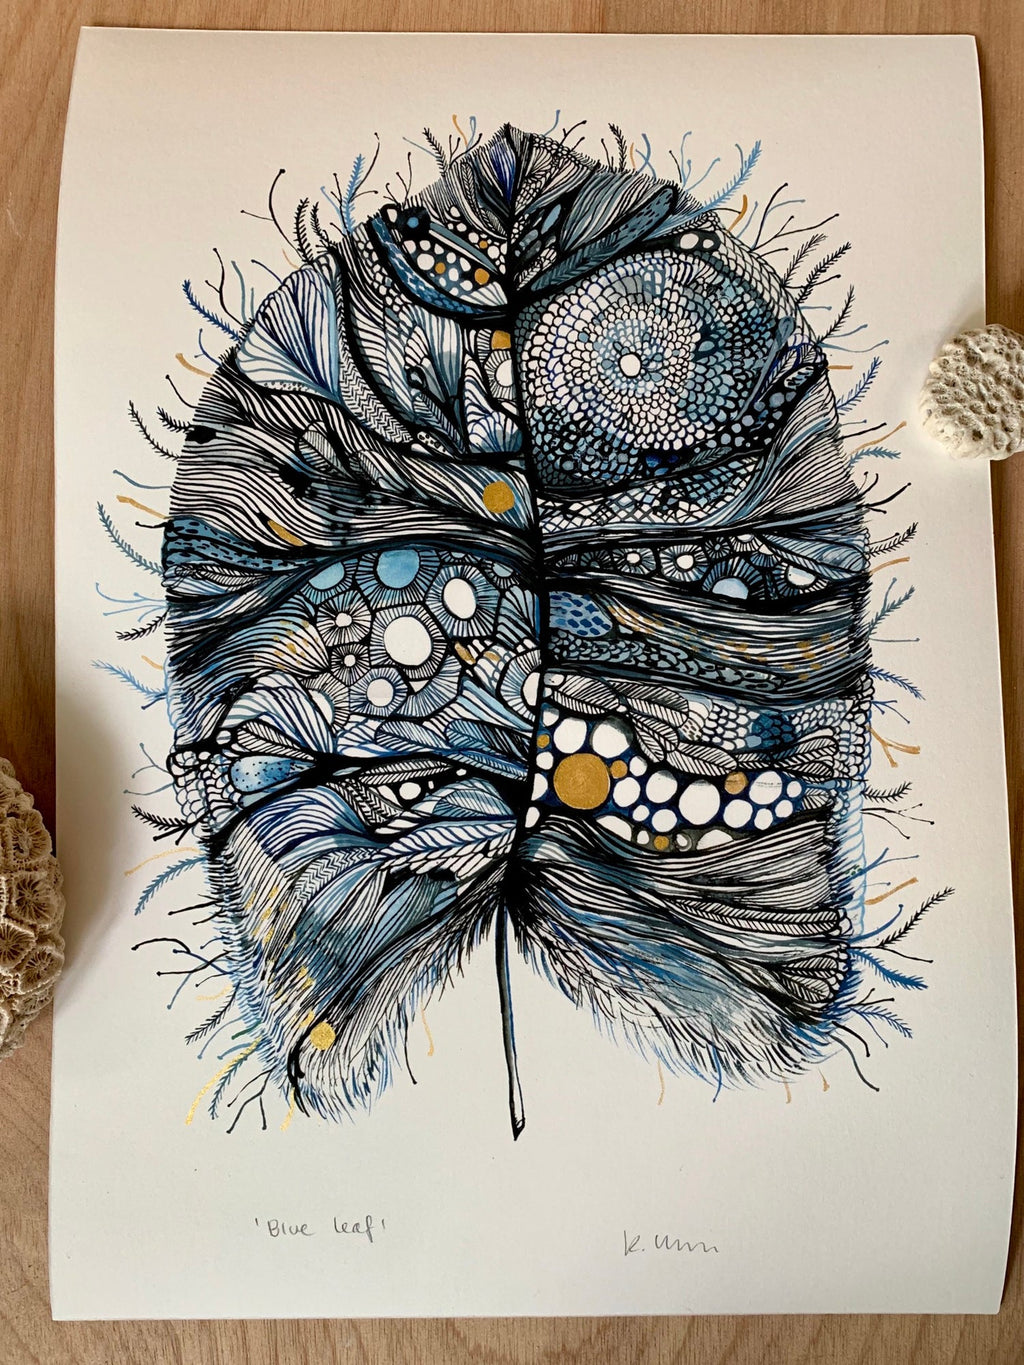 'Blue Leaf' with Hand-painted Gold Detail Print by Katherine Wheeler